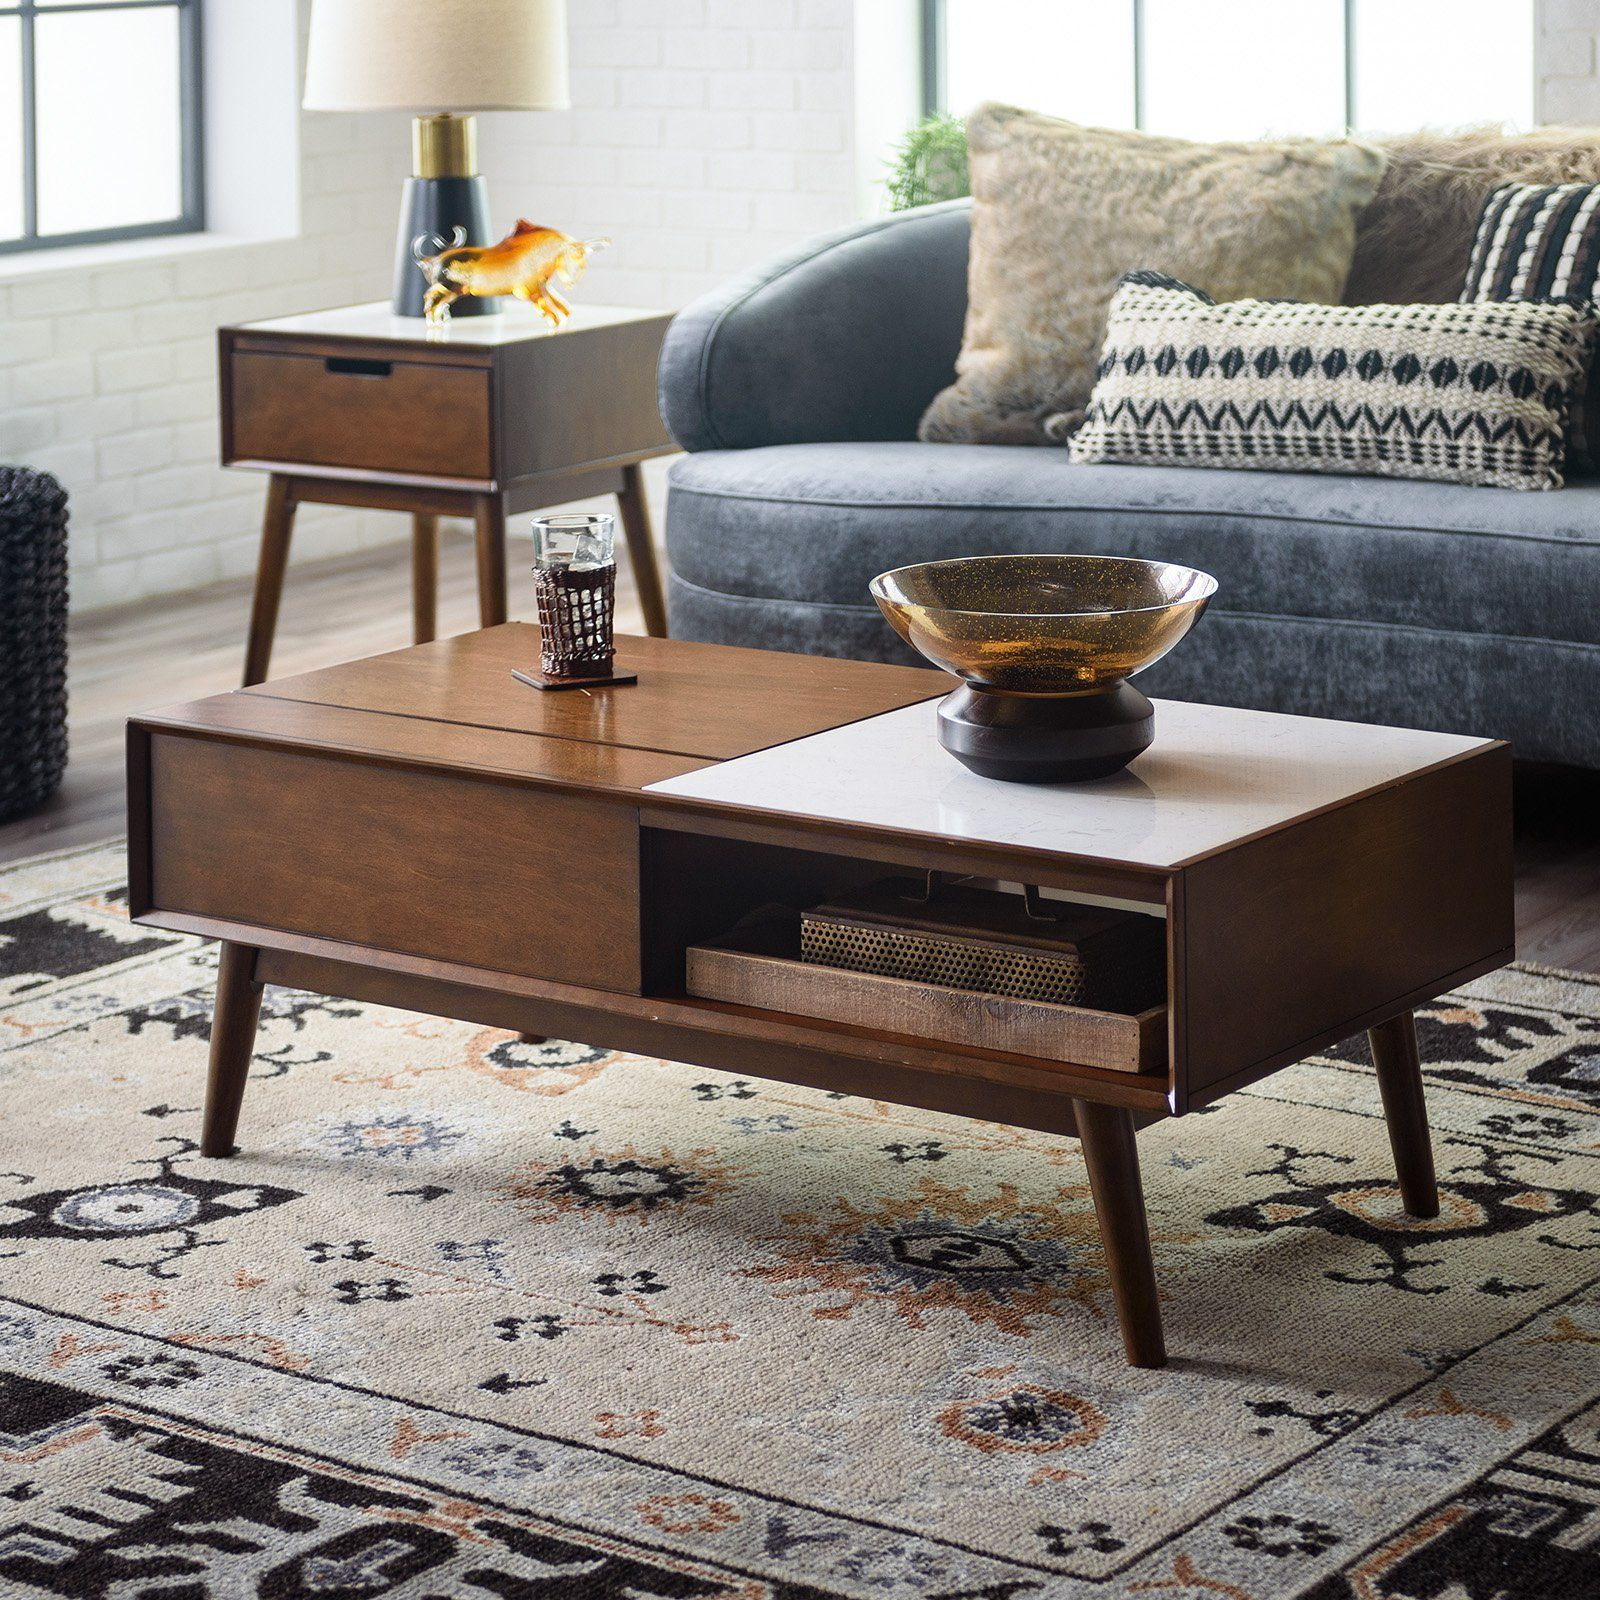 Belham Living Campbell Mid Century Modern Lift Top Marble Coffee Table From Hayneedle C Mid Century Modern Coffee Table Coffee Table Mid Century Coffee Table [ 1600 x 1600 Pixel ]